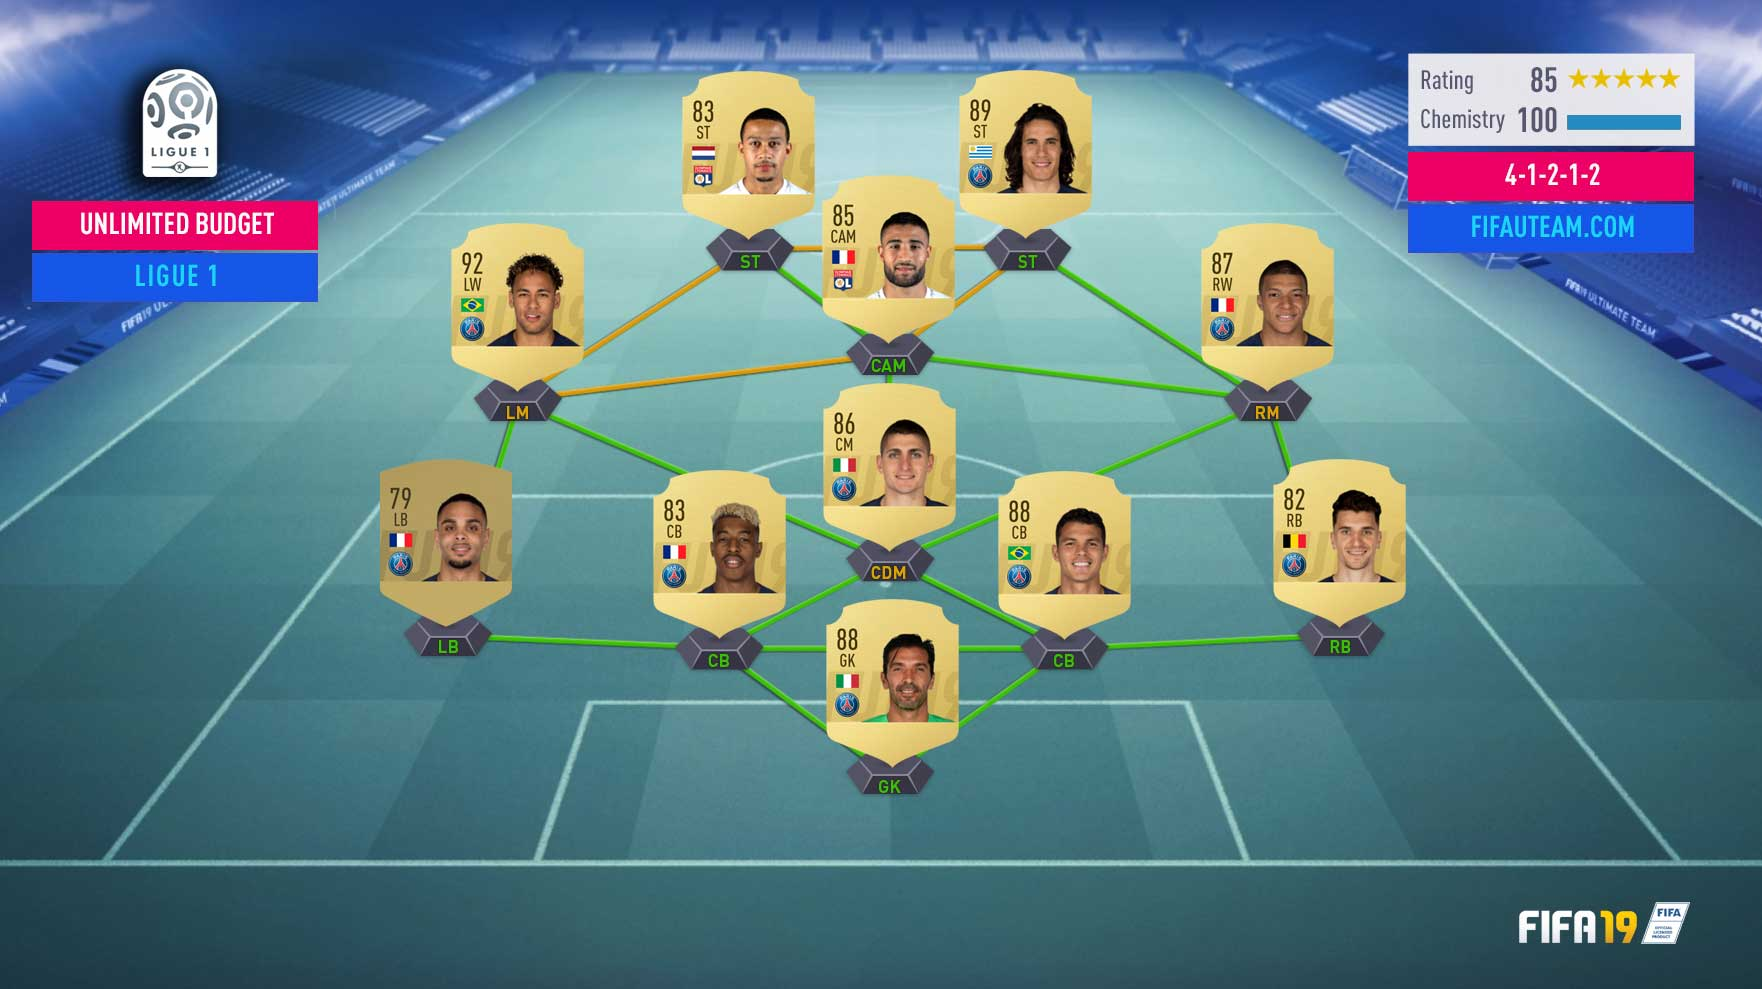 The Best FIFA 19 League to Play on FIFA 19 Ultimate Team